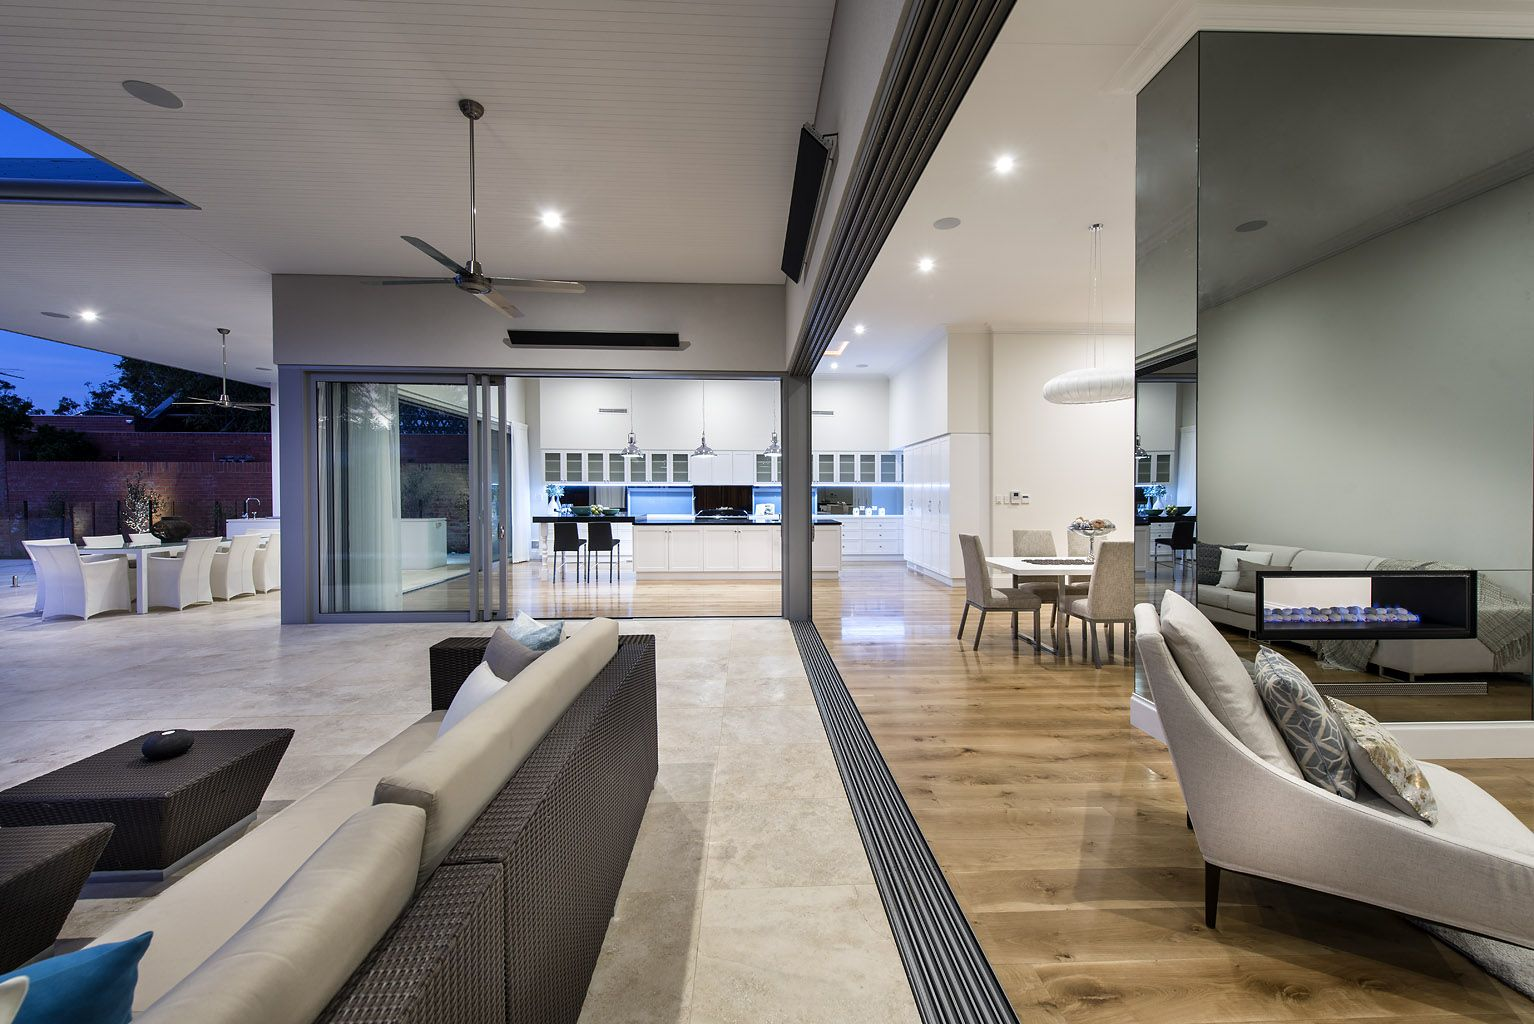 Cambuild   Custom Home Builder | Perth, Western Australia | Luxury Homes |  Timber Floors | Dream Kitchen | Stone Bench Top | Custom Design | Pool |  Ensuite ...